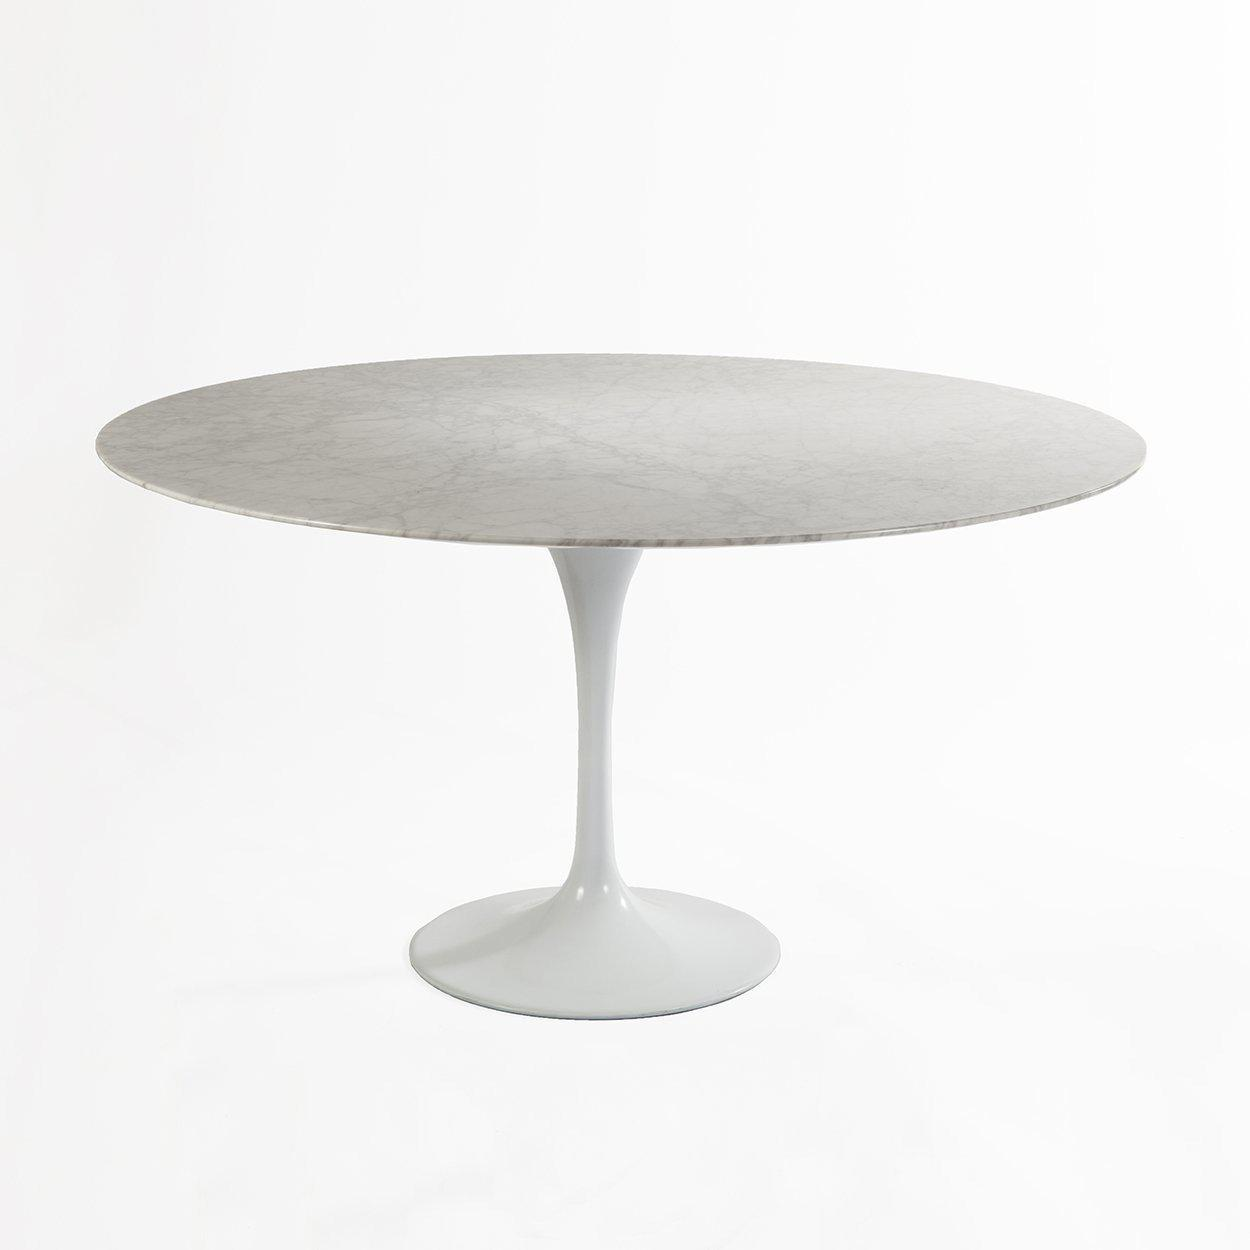 [RT335R54WHITE] The Marble Tulip Dining Table 54